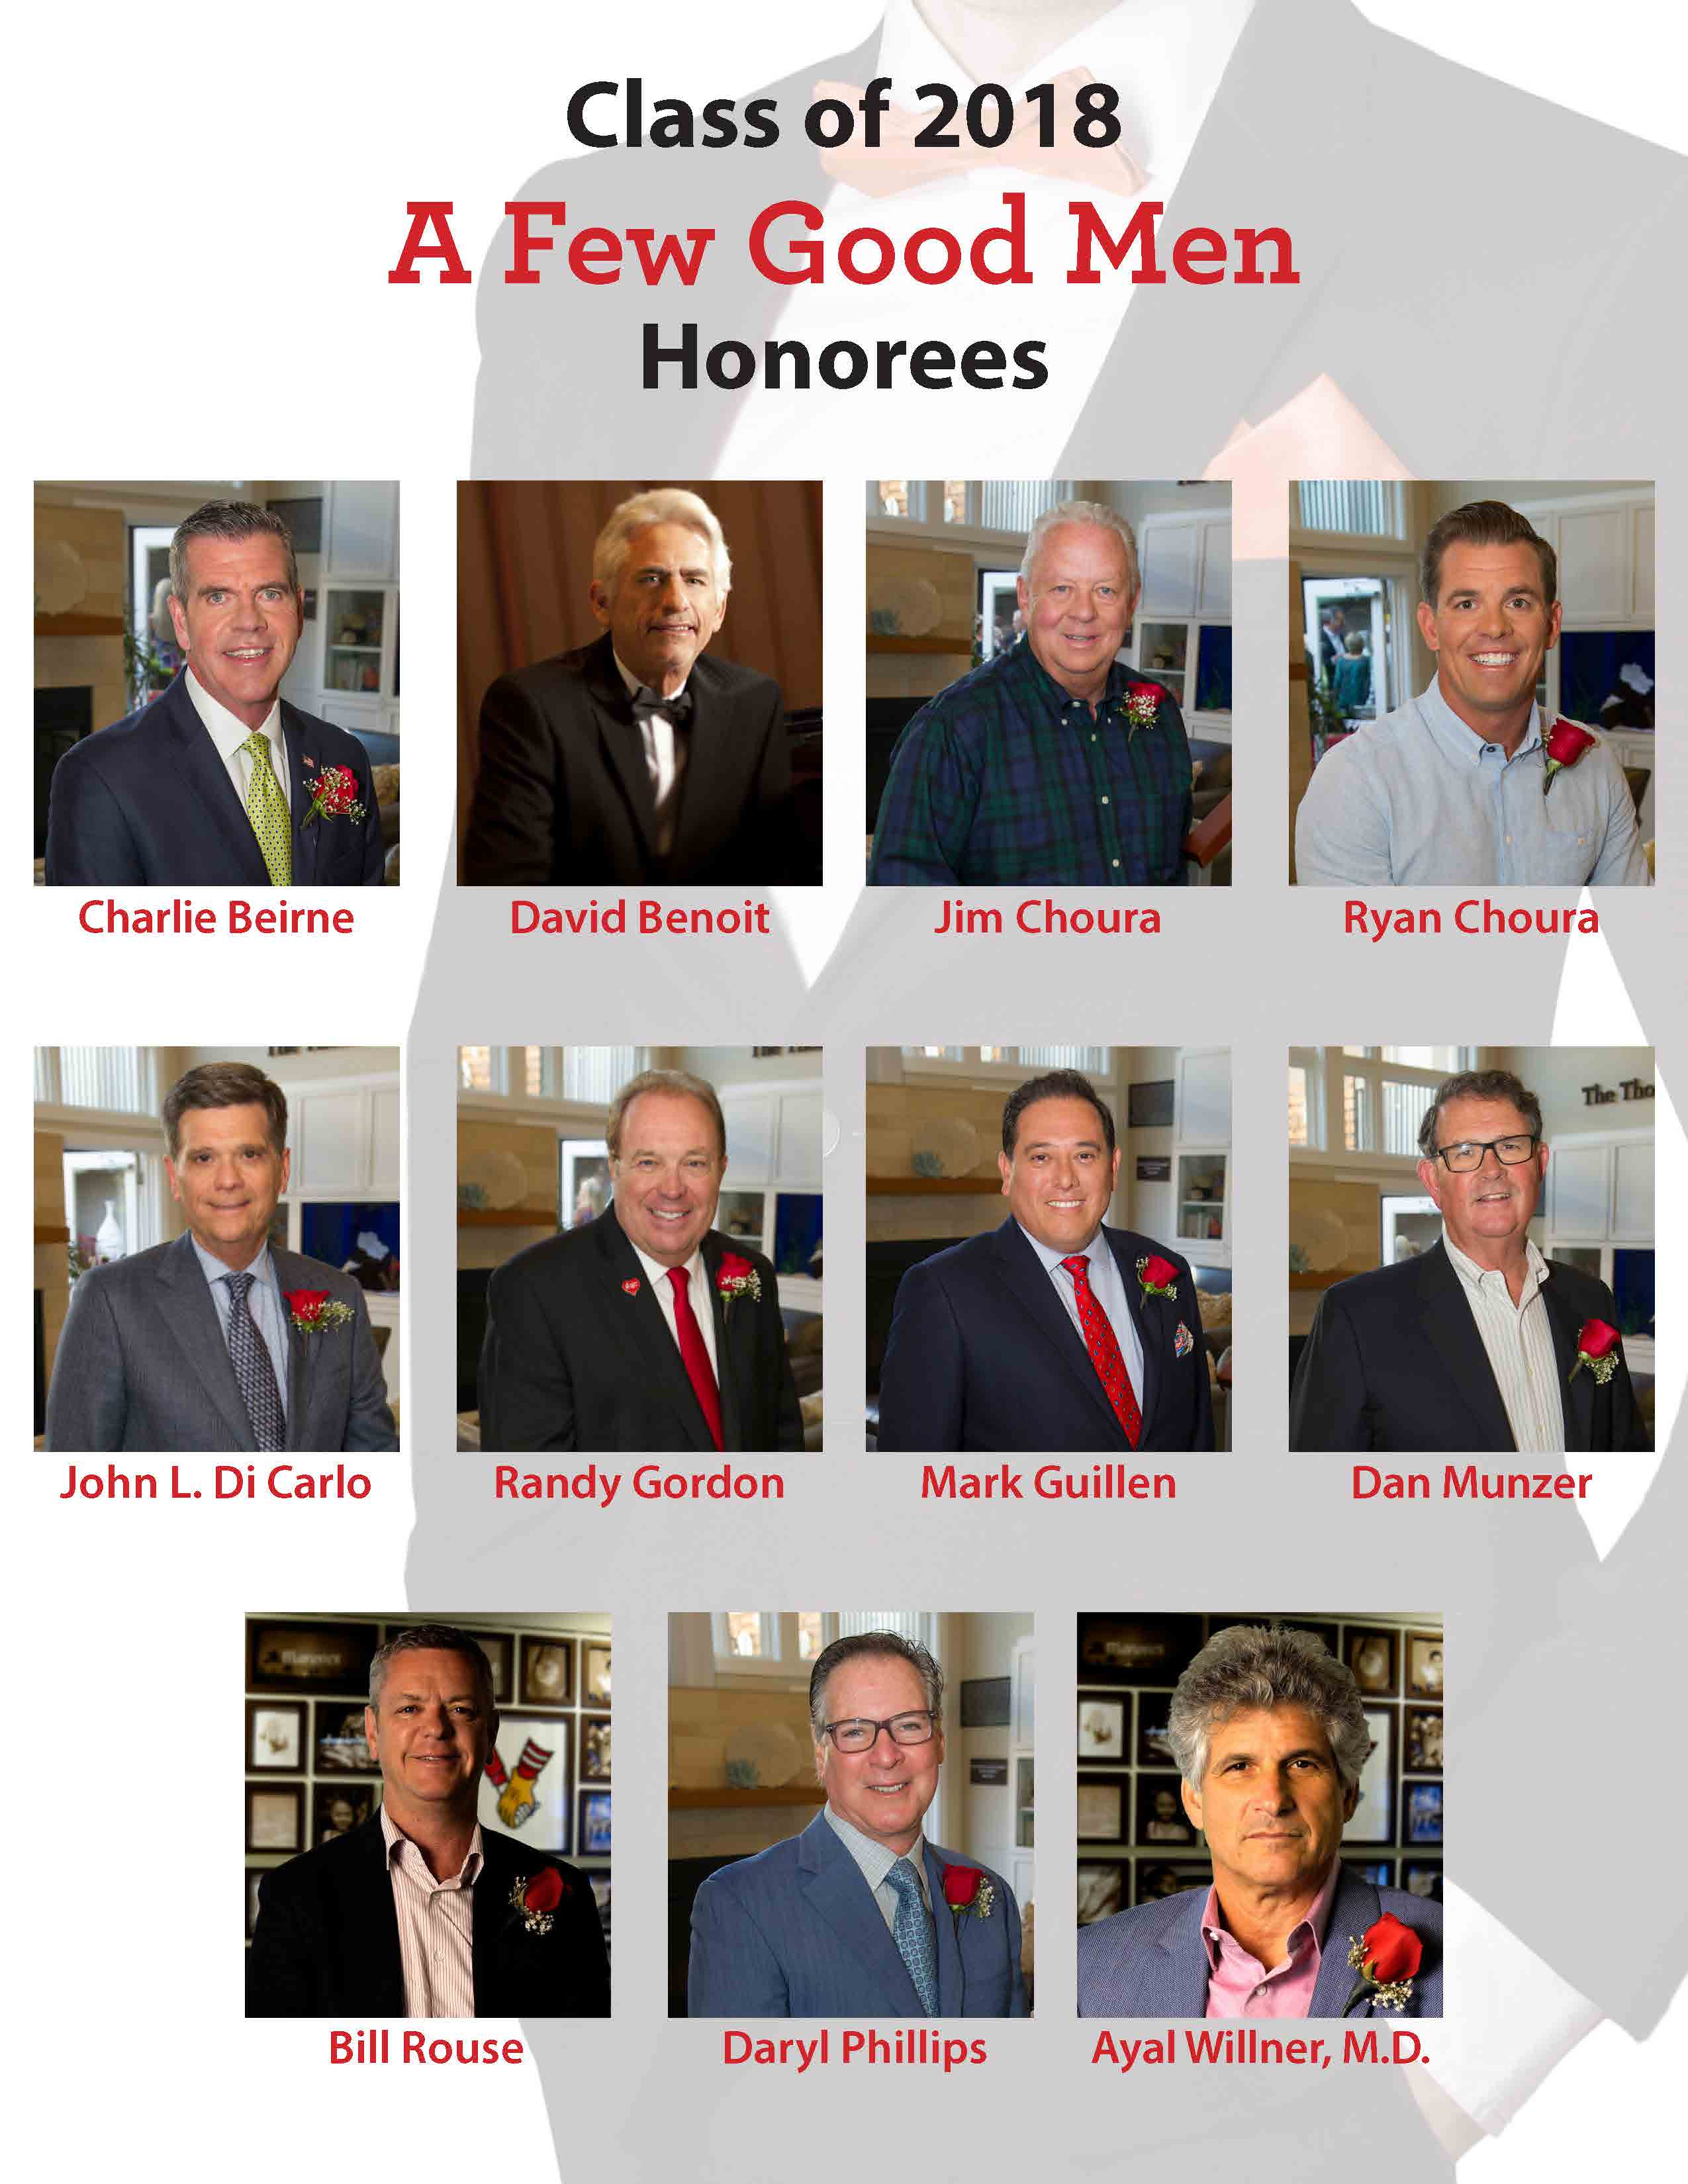 Honorees Photos collage